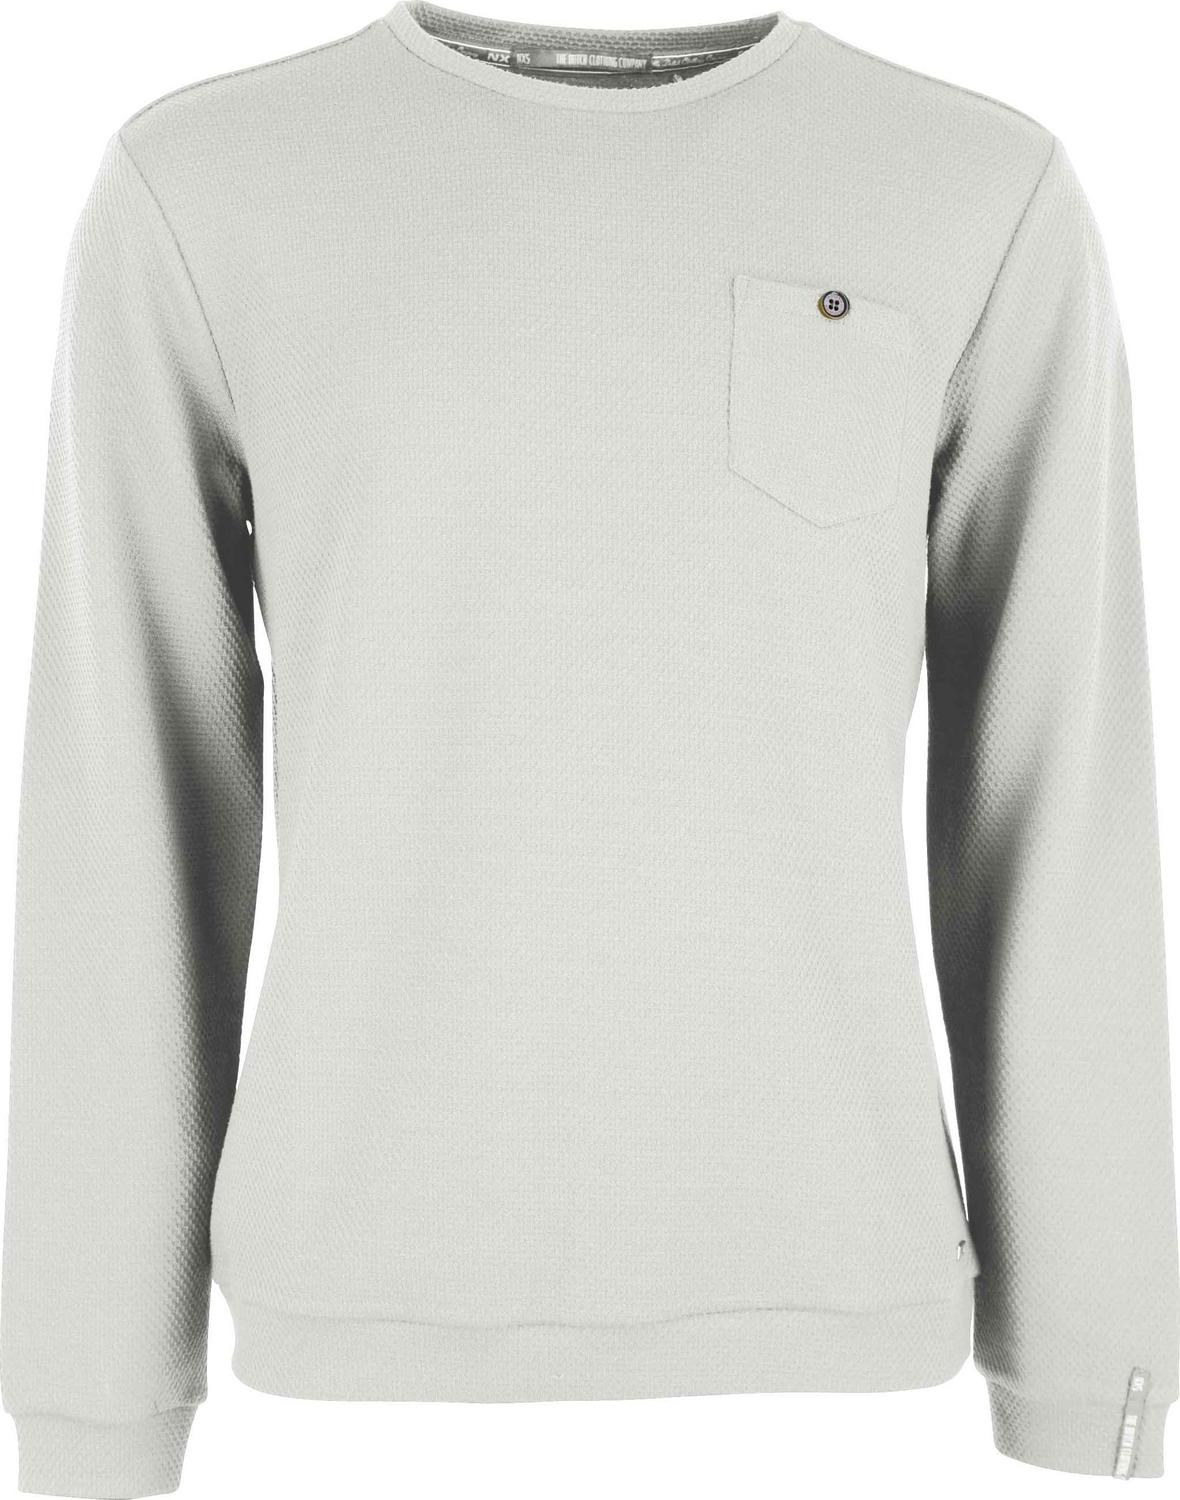 Round Neck Jacquard Sweater With Chest Pocket